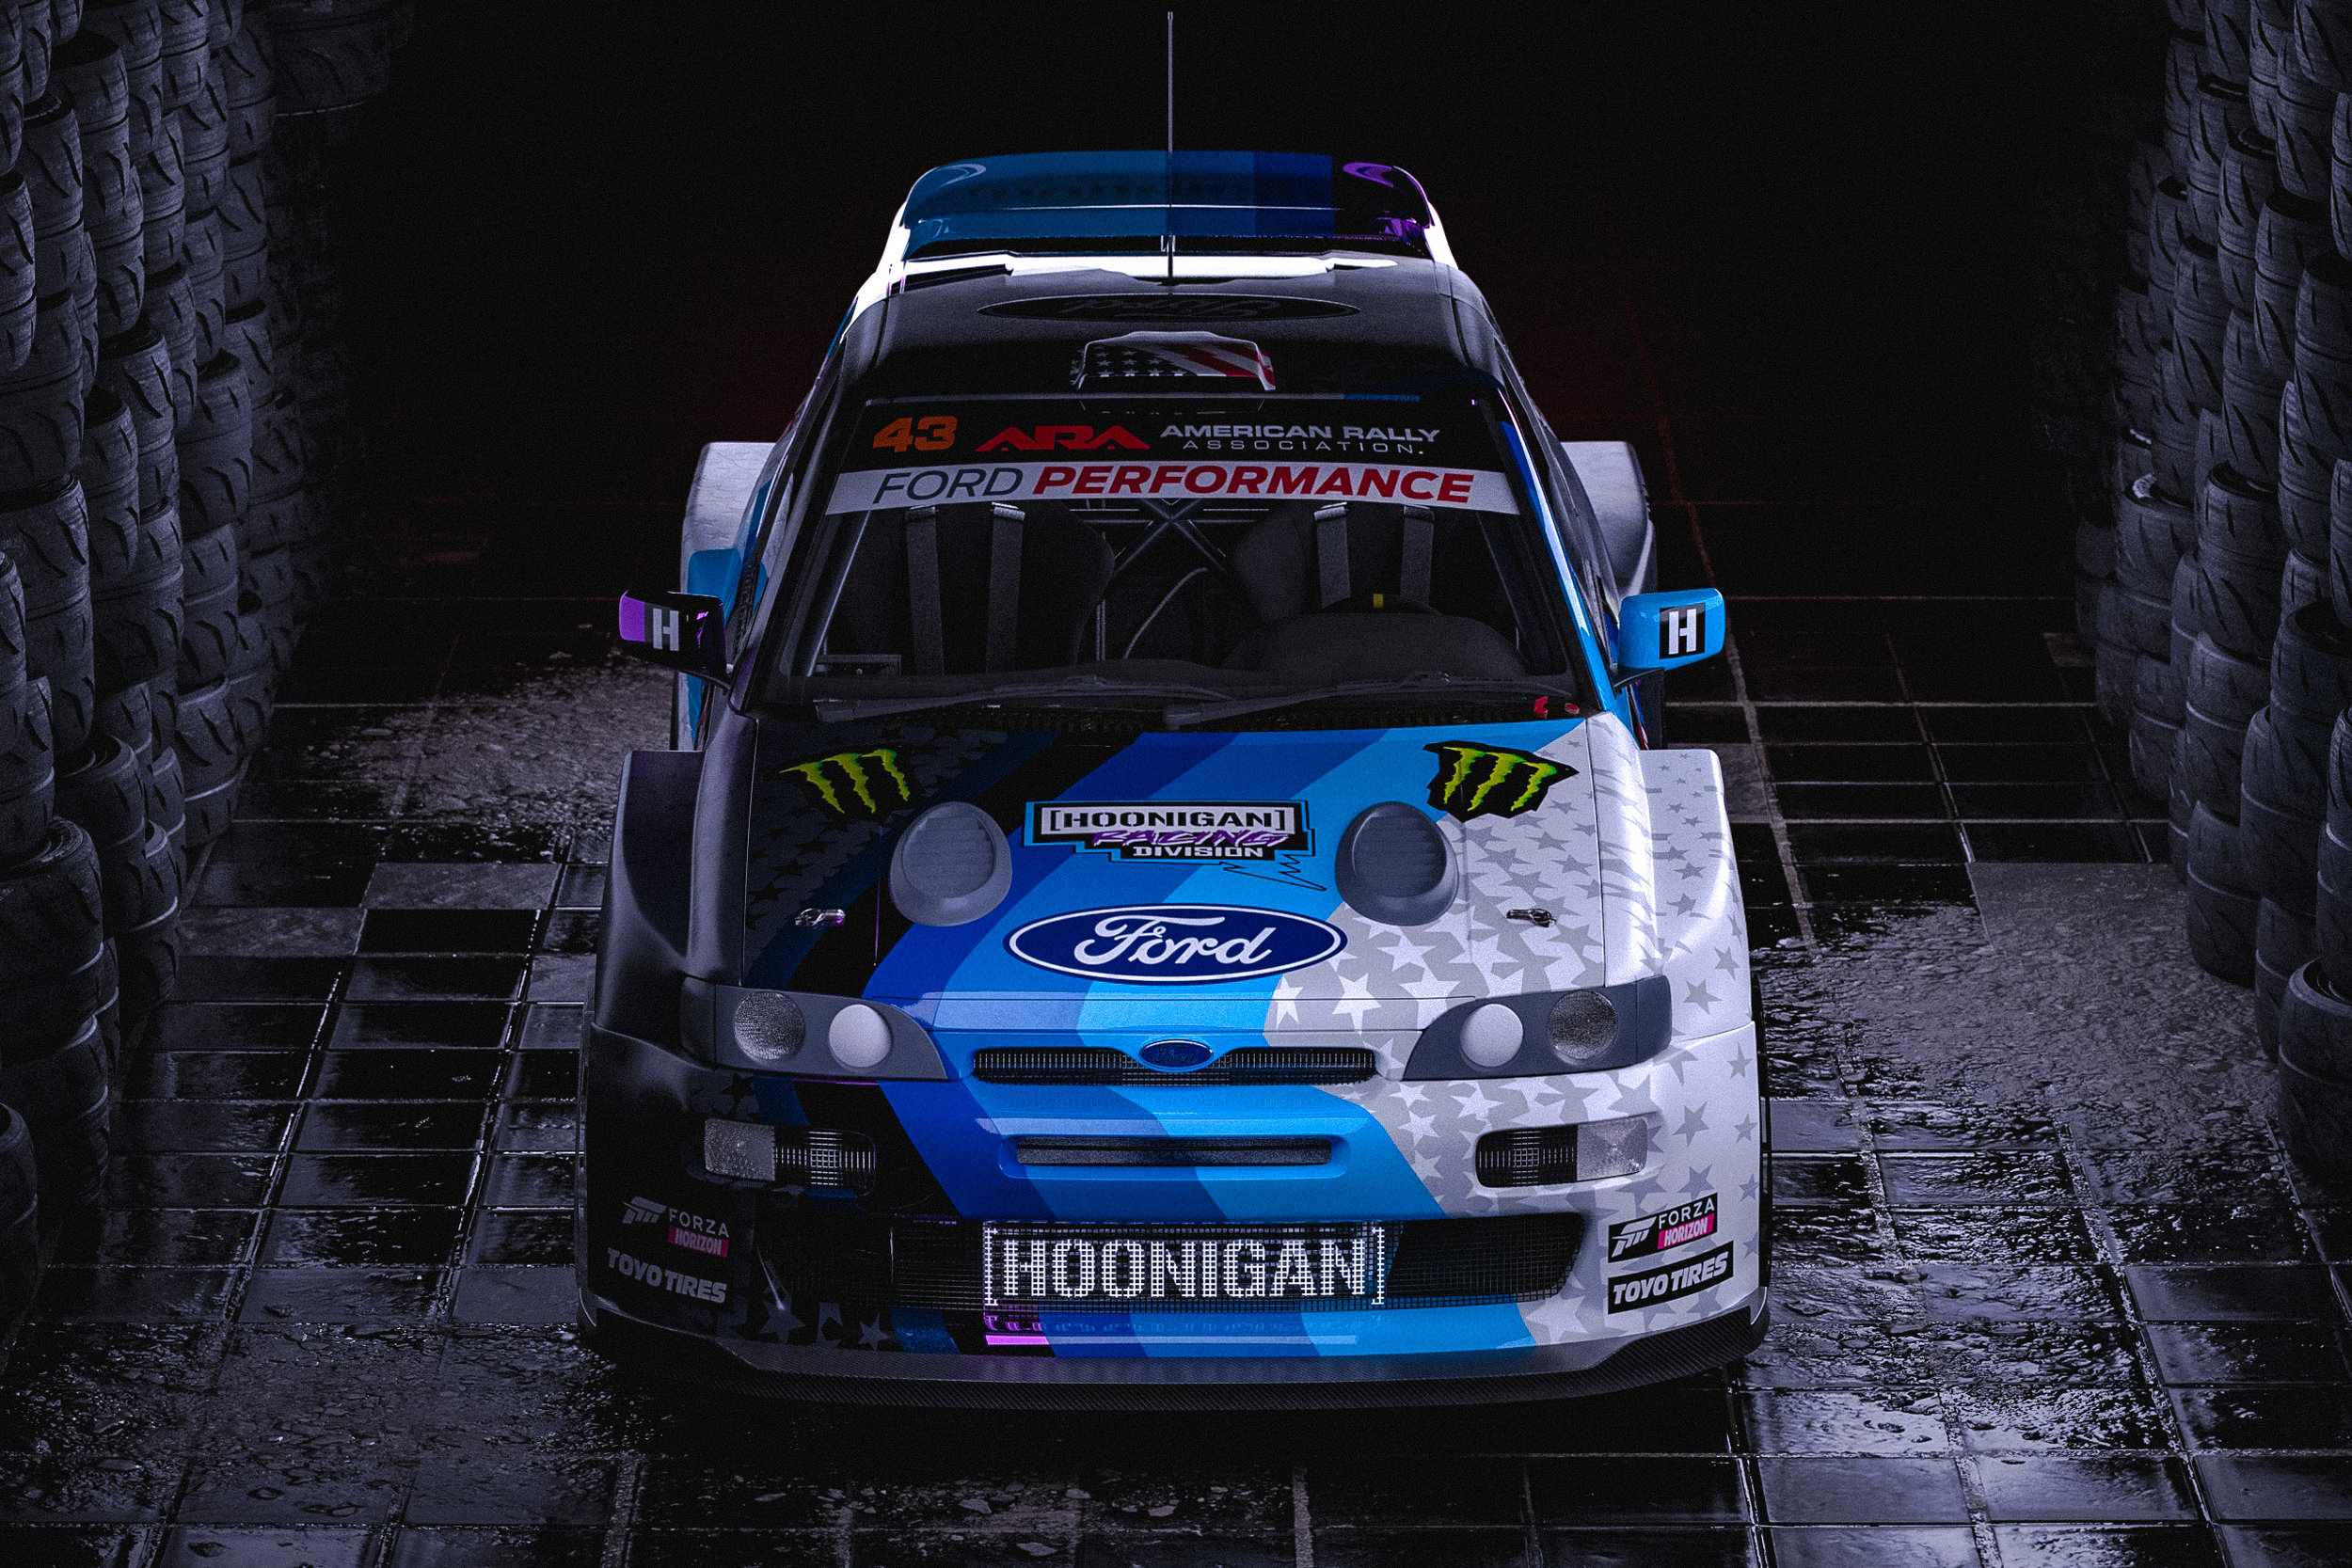 FORD_ESCORT_RS_COSWORTH_AT_013_016.jpg